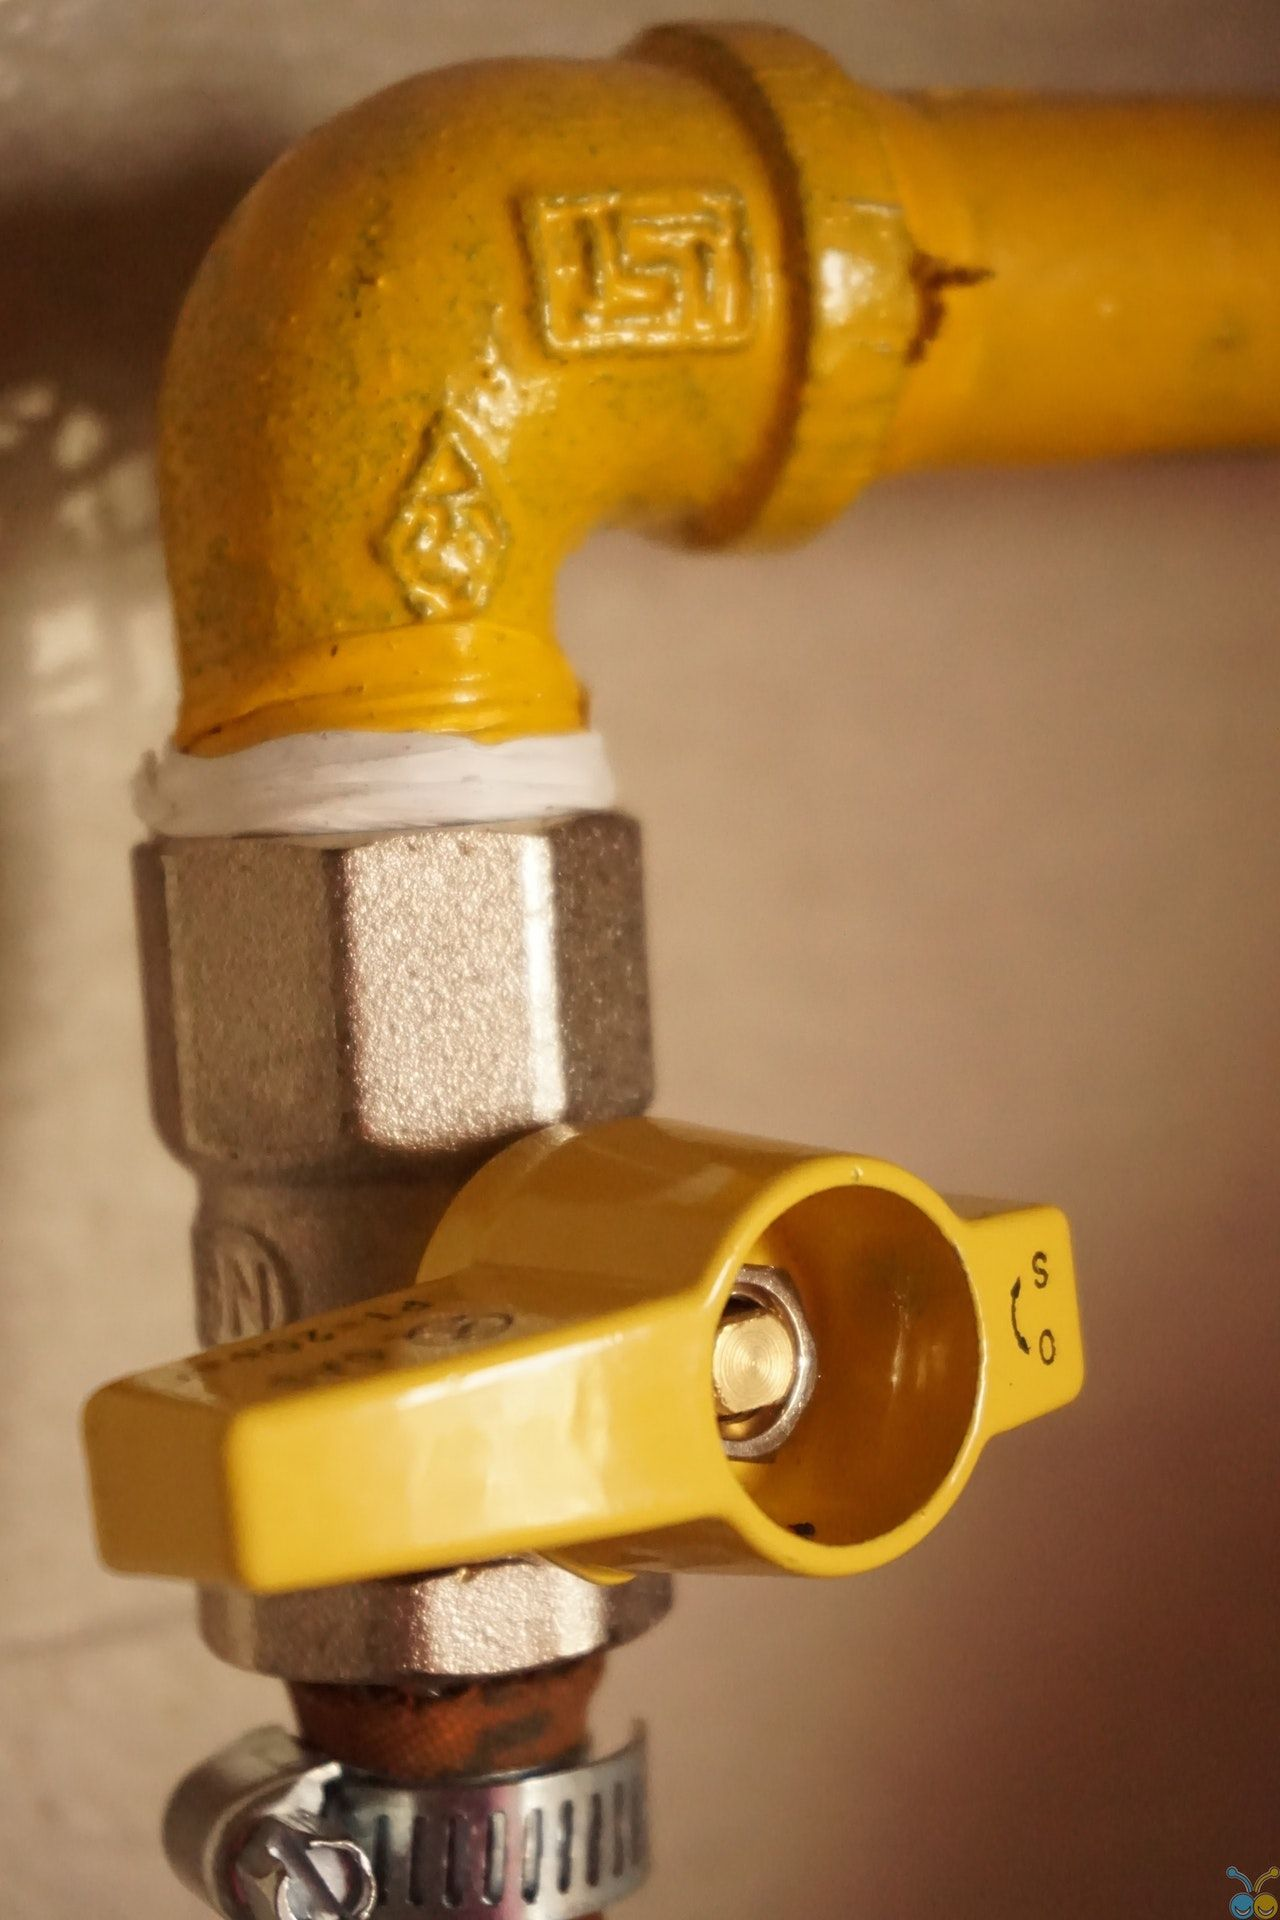 How To Find Out Plumbers Near Me Diy plumbing, Plumbing